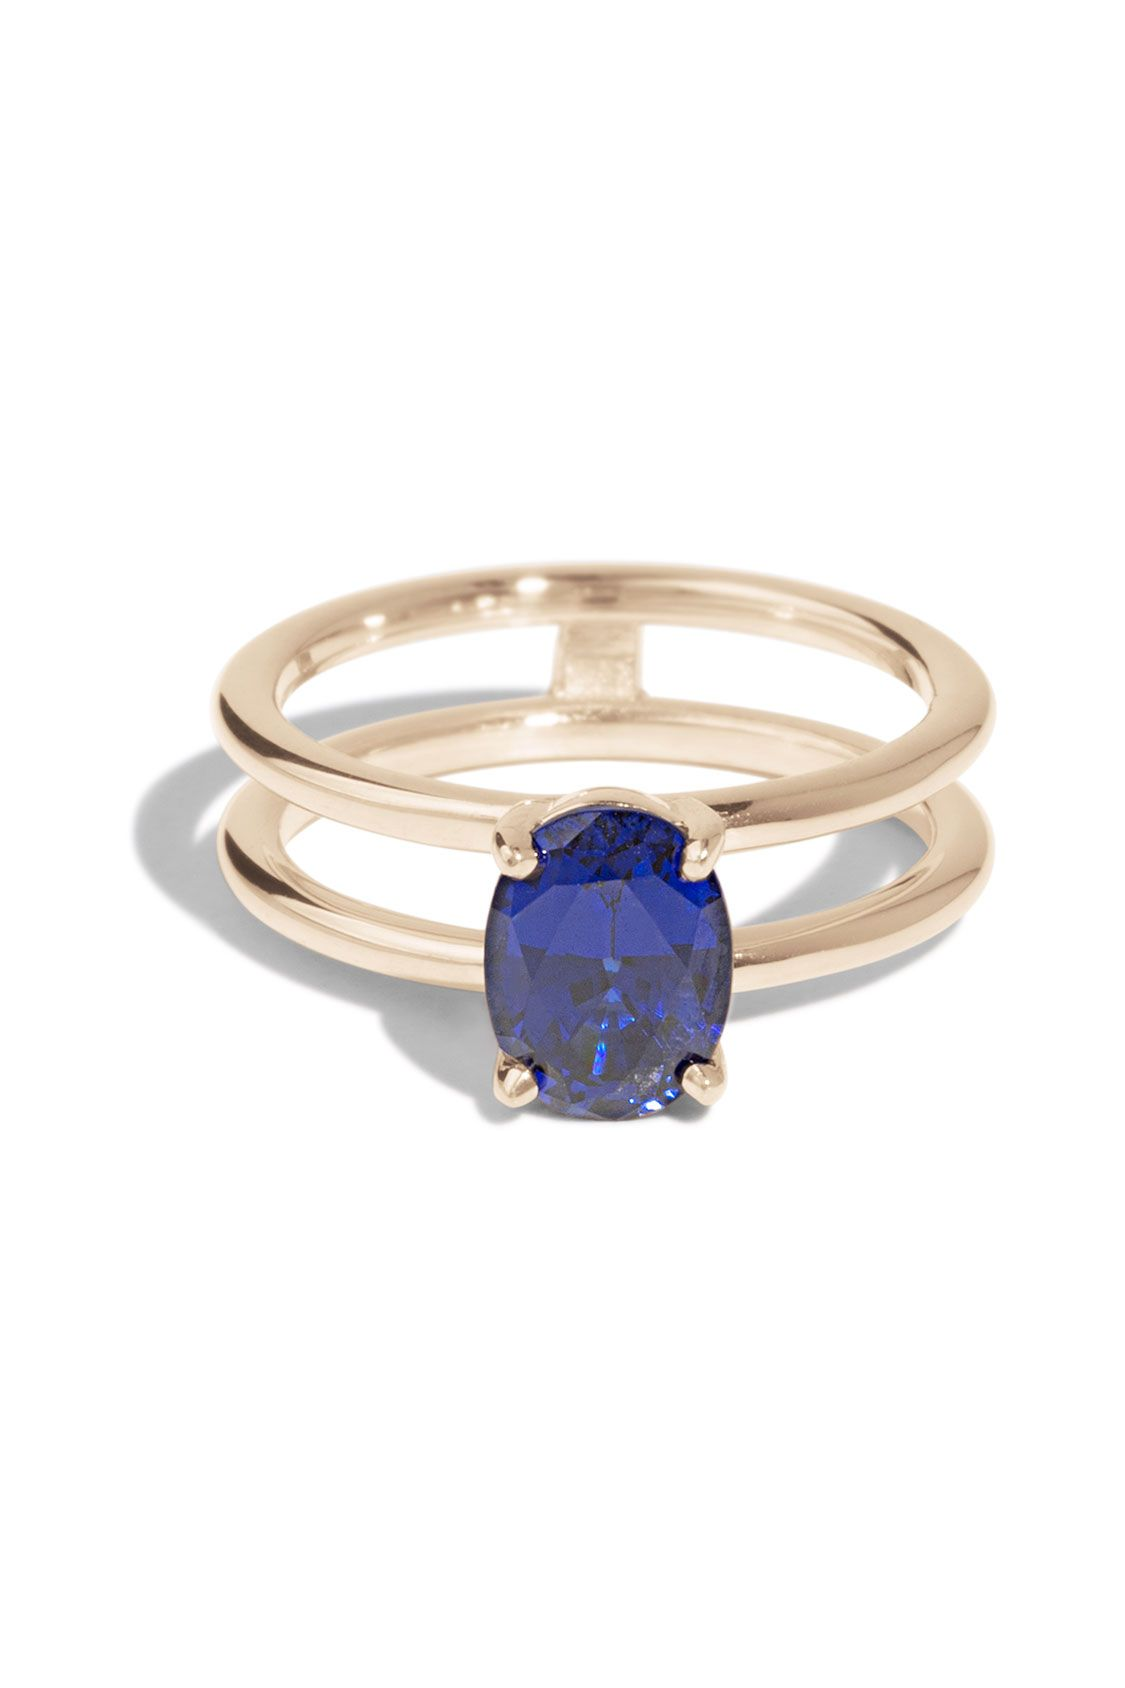 911728fdf This custom Double Band Ring features an 8x6mm oval lab created Blue  Sapphire with a 2mm space between the round bands that was designed to hold  a wedding ...